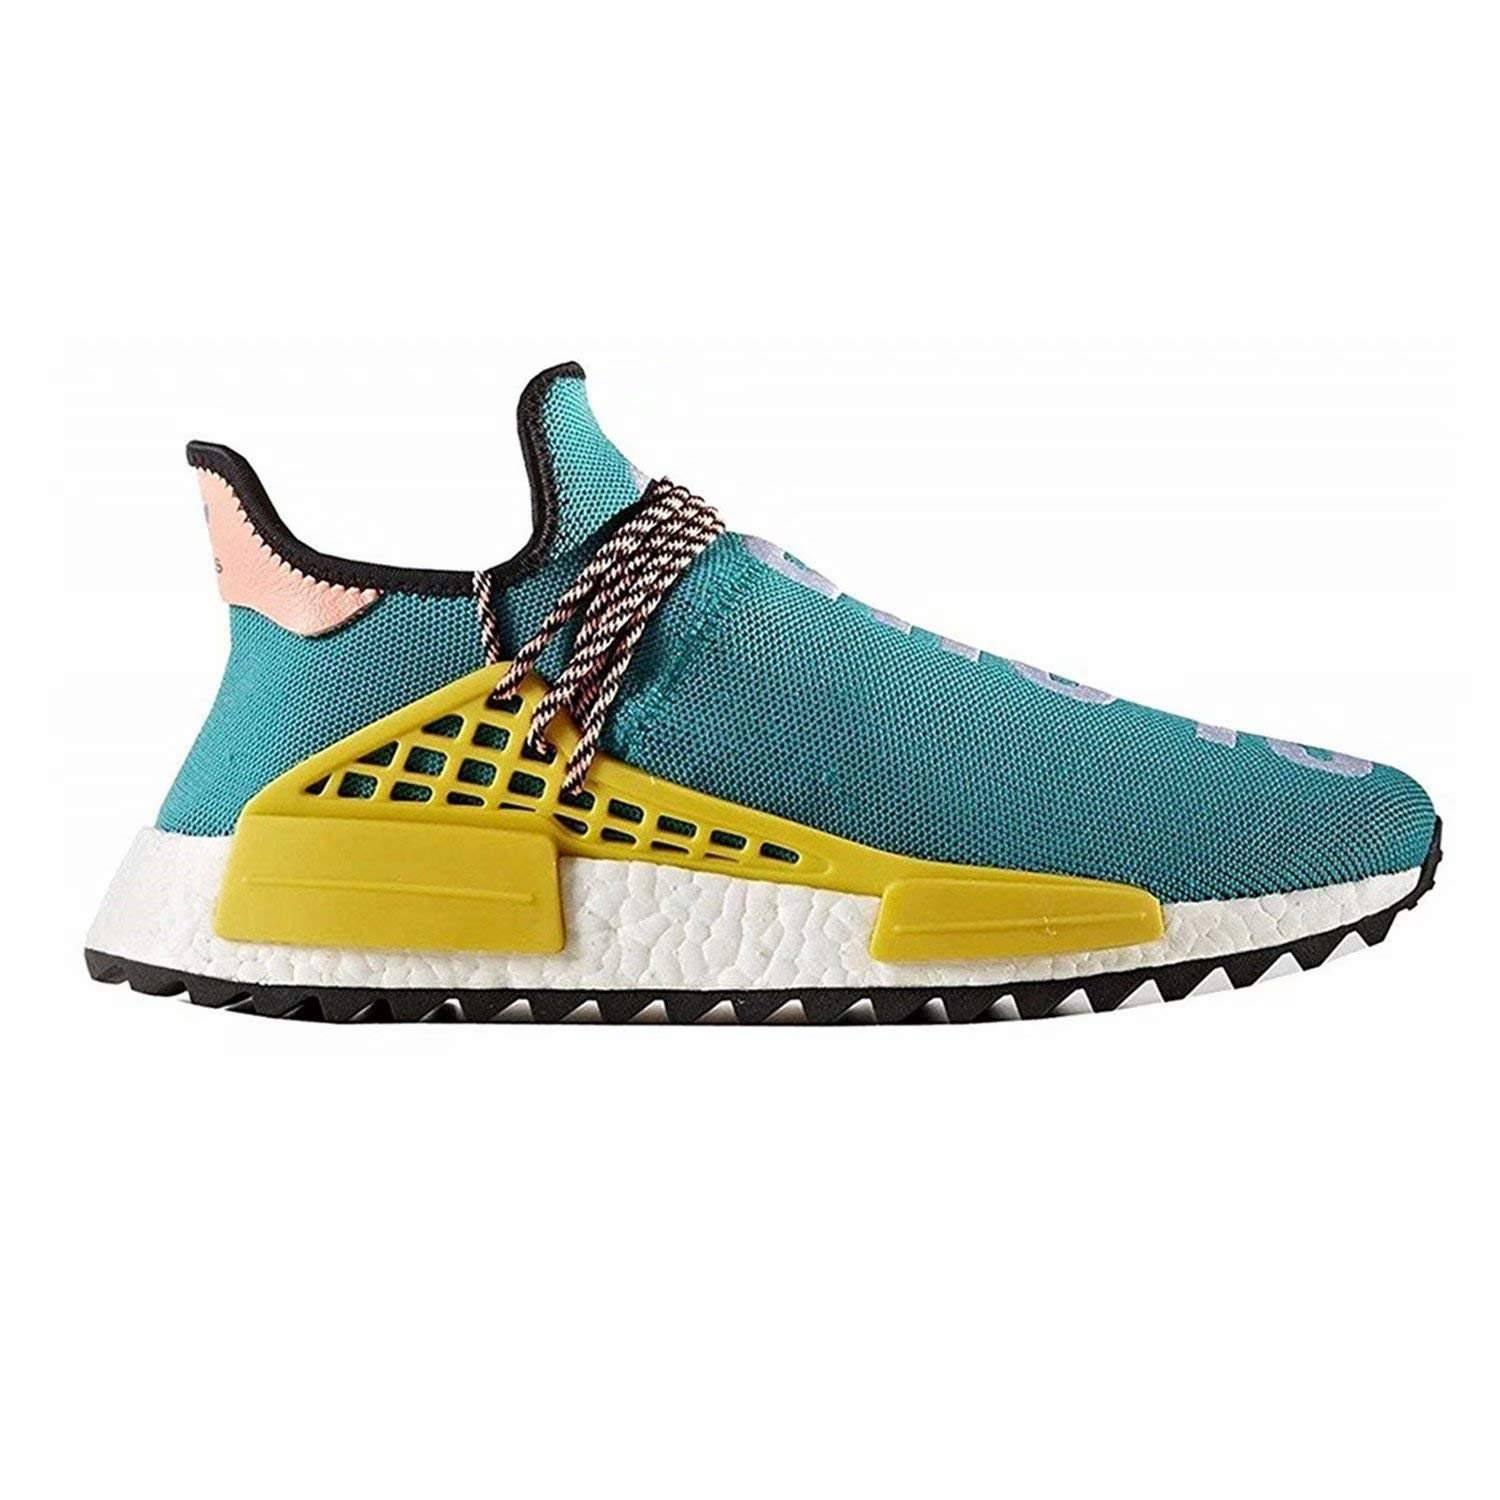 Men's Casual Breathable Lightweight Turnschuhe Trail Human Race Pharrell schuhe Free Fashion Turnschuhe Lightweight Light Blau EU42 de5e66